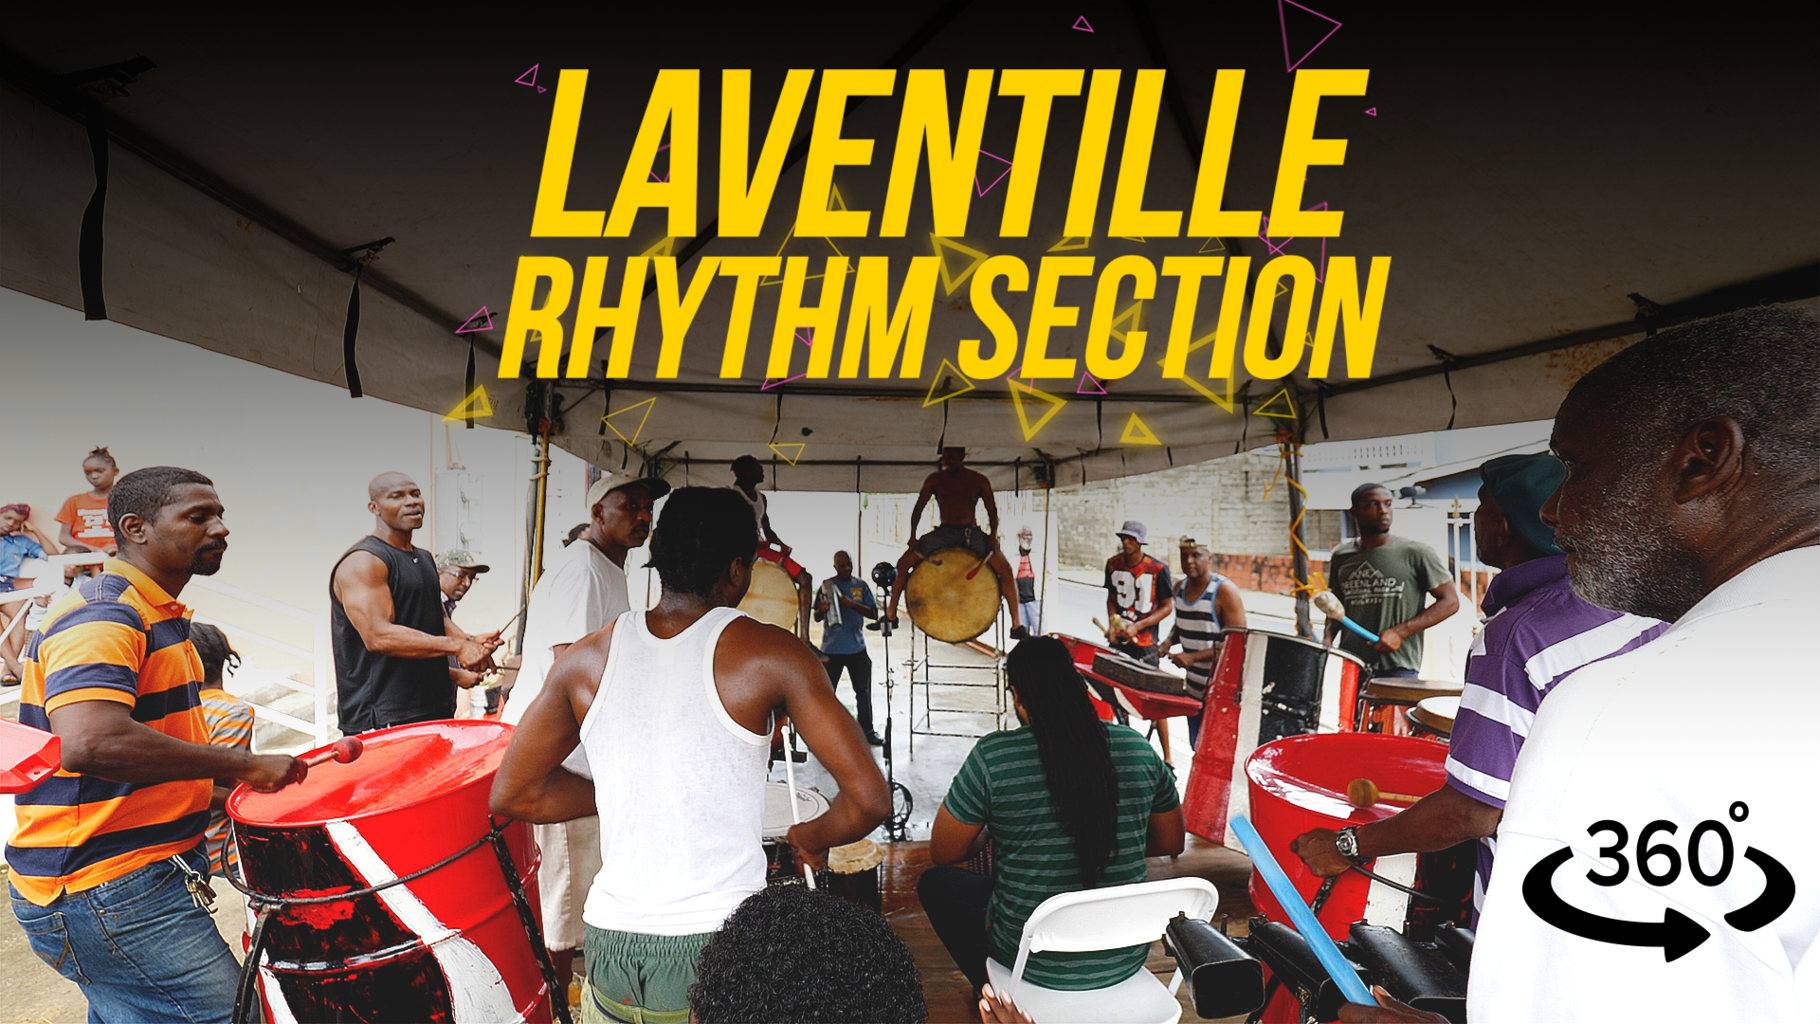 RB_LaventilleRhythemSectioncover